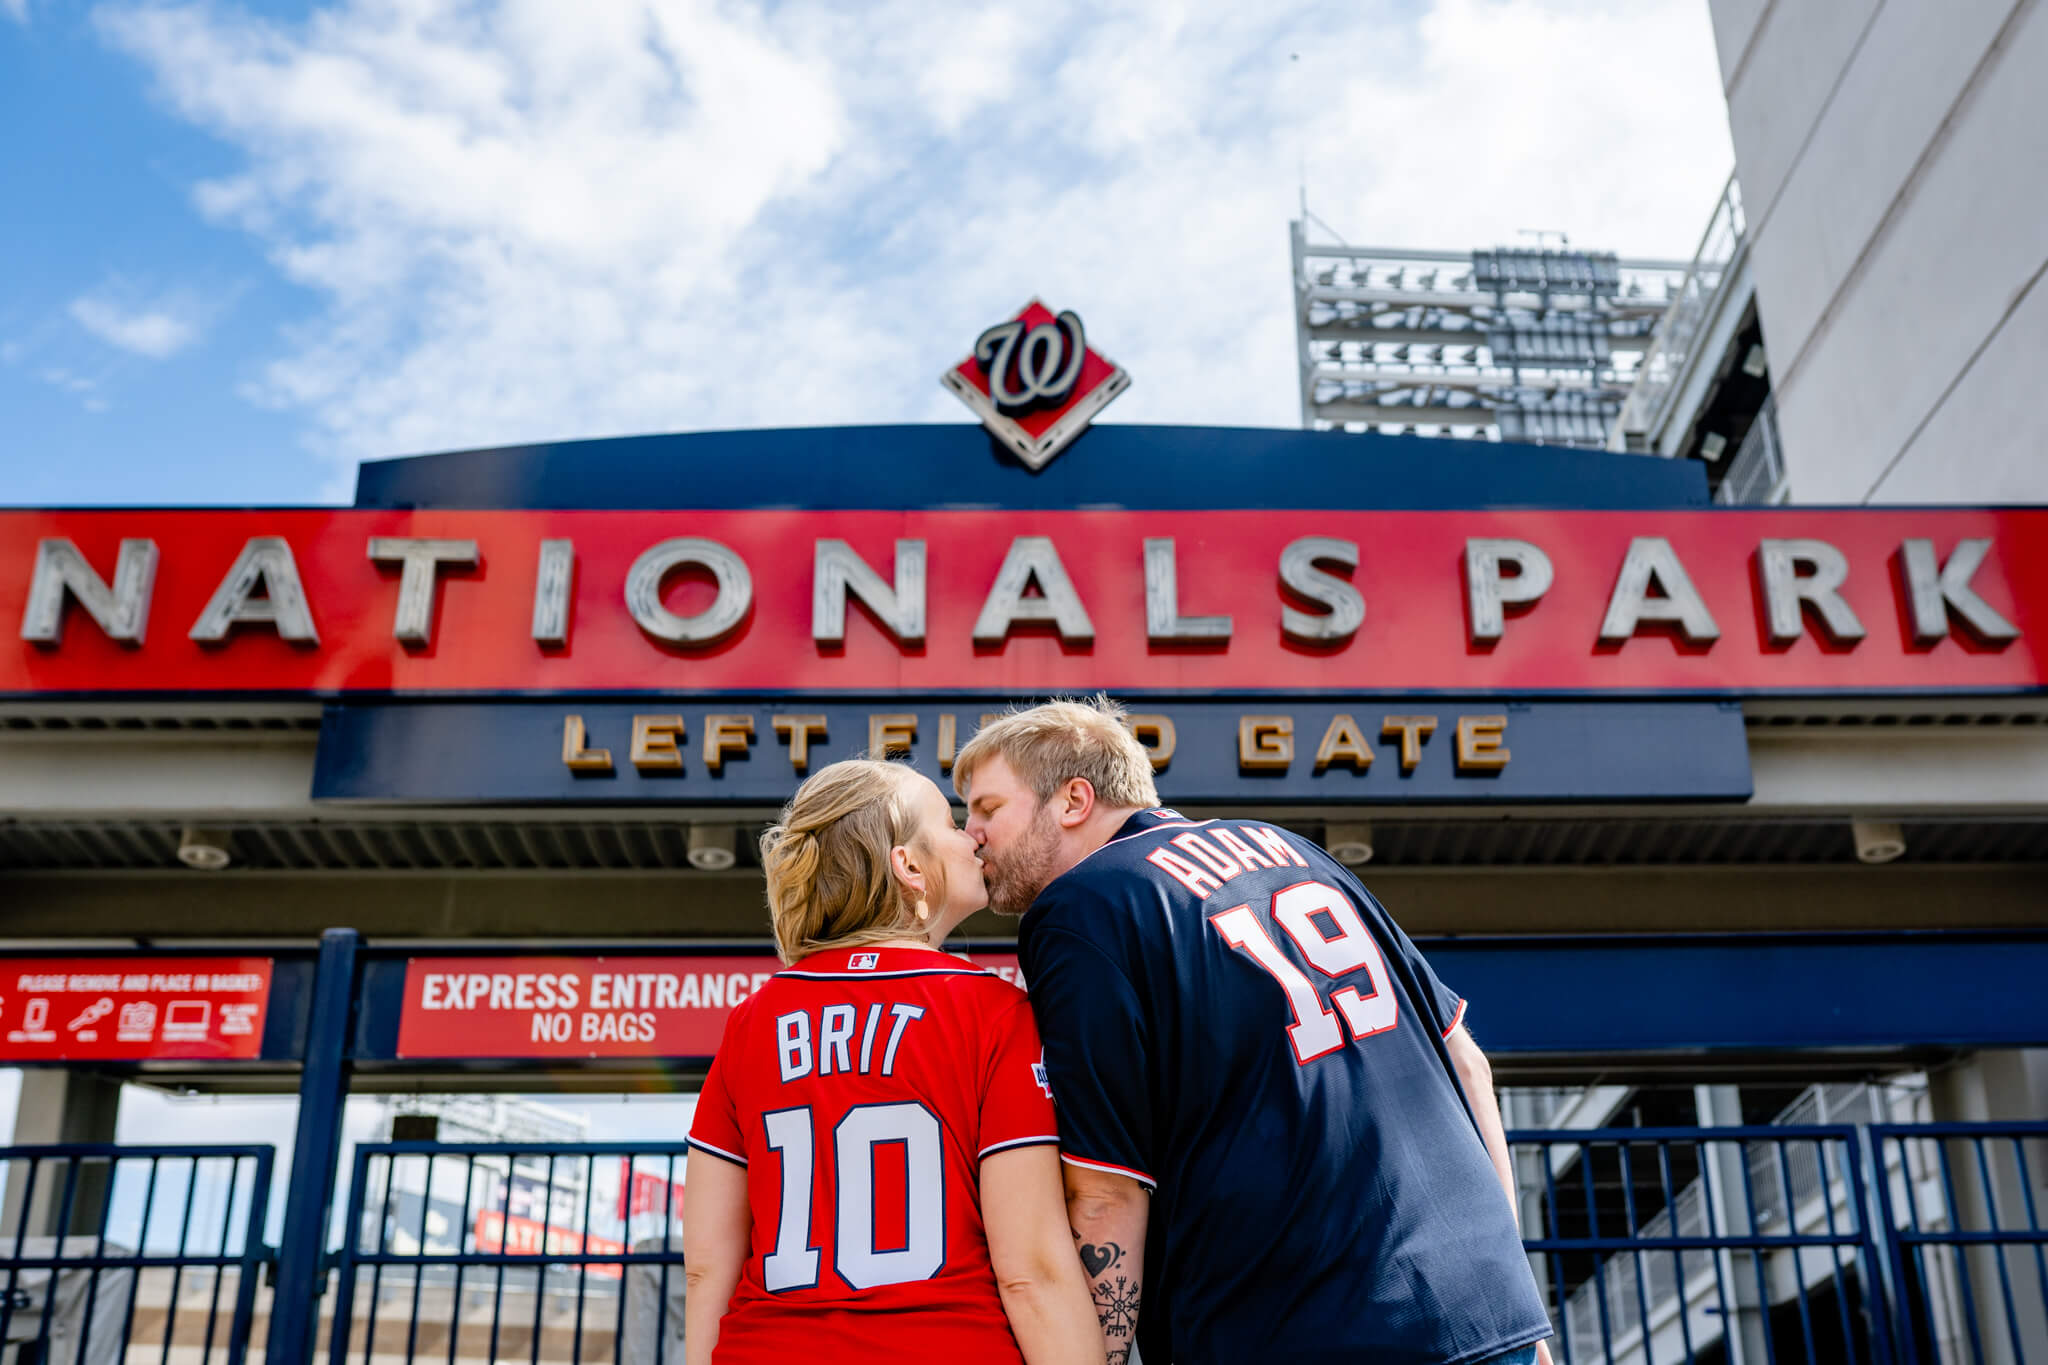 Britney Dan Bluejacket Brewery Engagement Washington DC The Wharf Engagement Flannel Beer-11Nationals Park Baseball.jpg